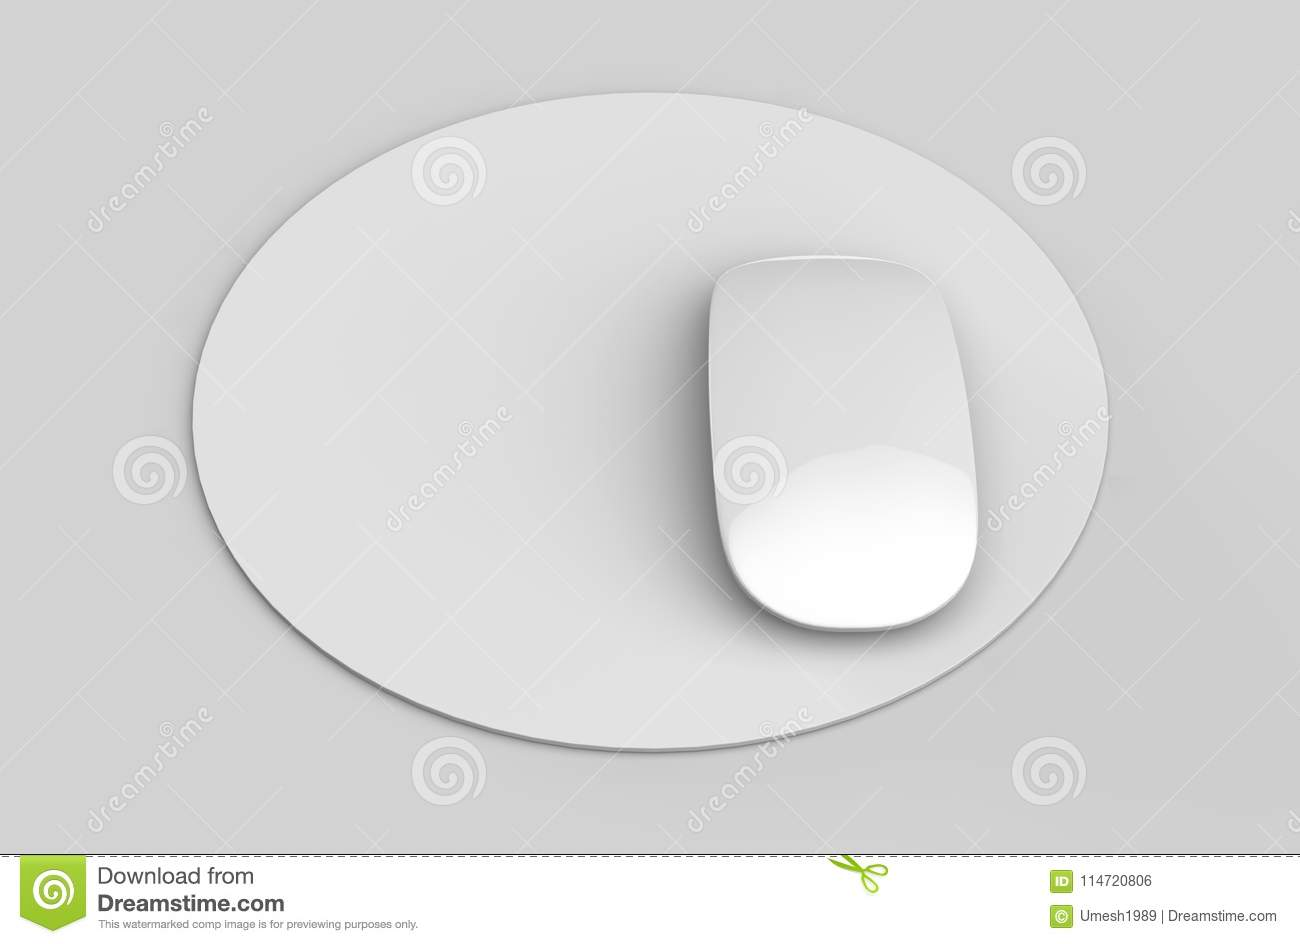 circular blank mouse pad with computer mouse for branding or design